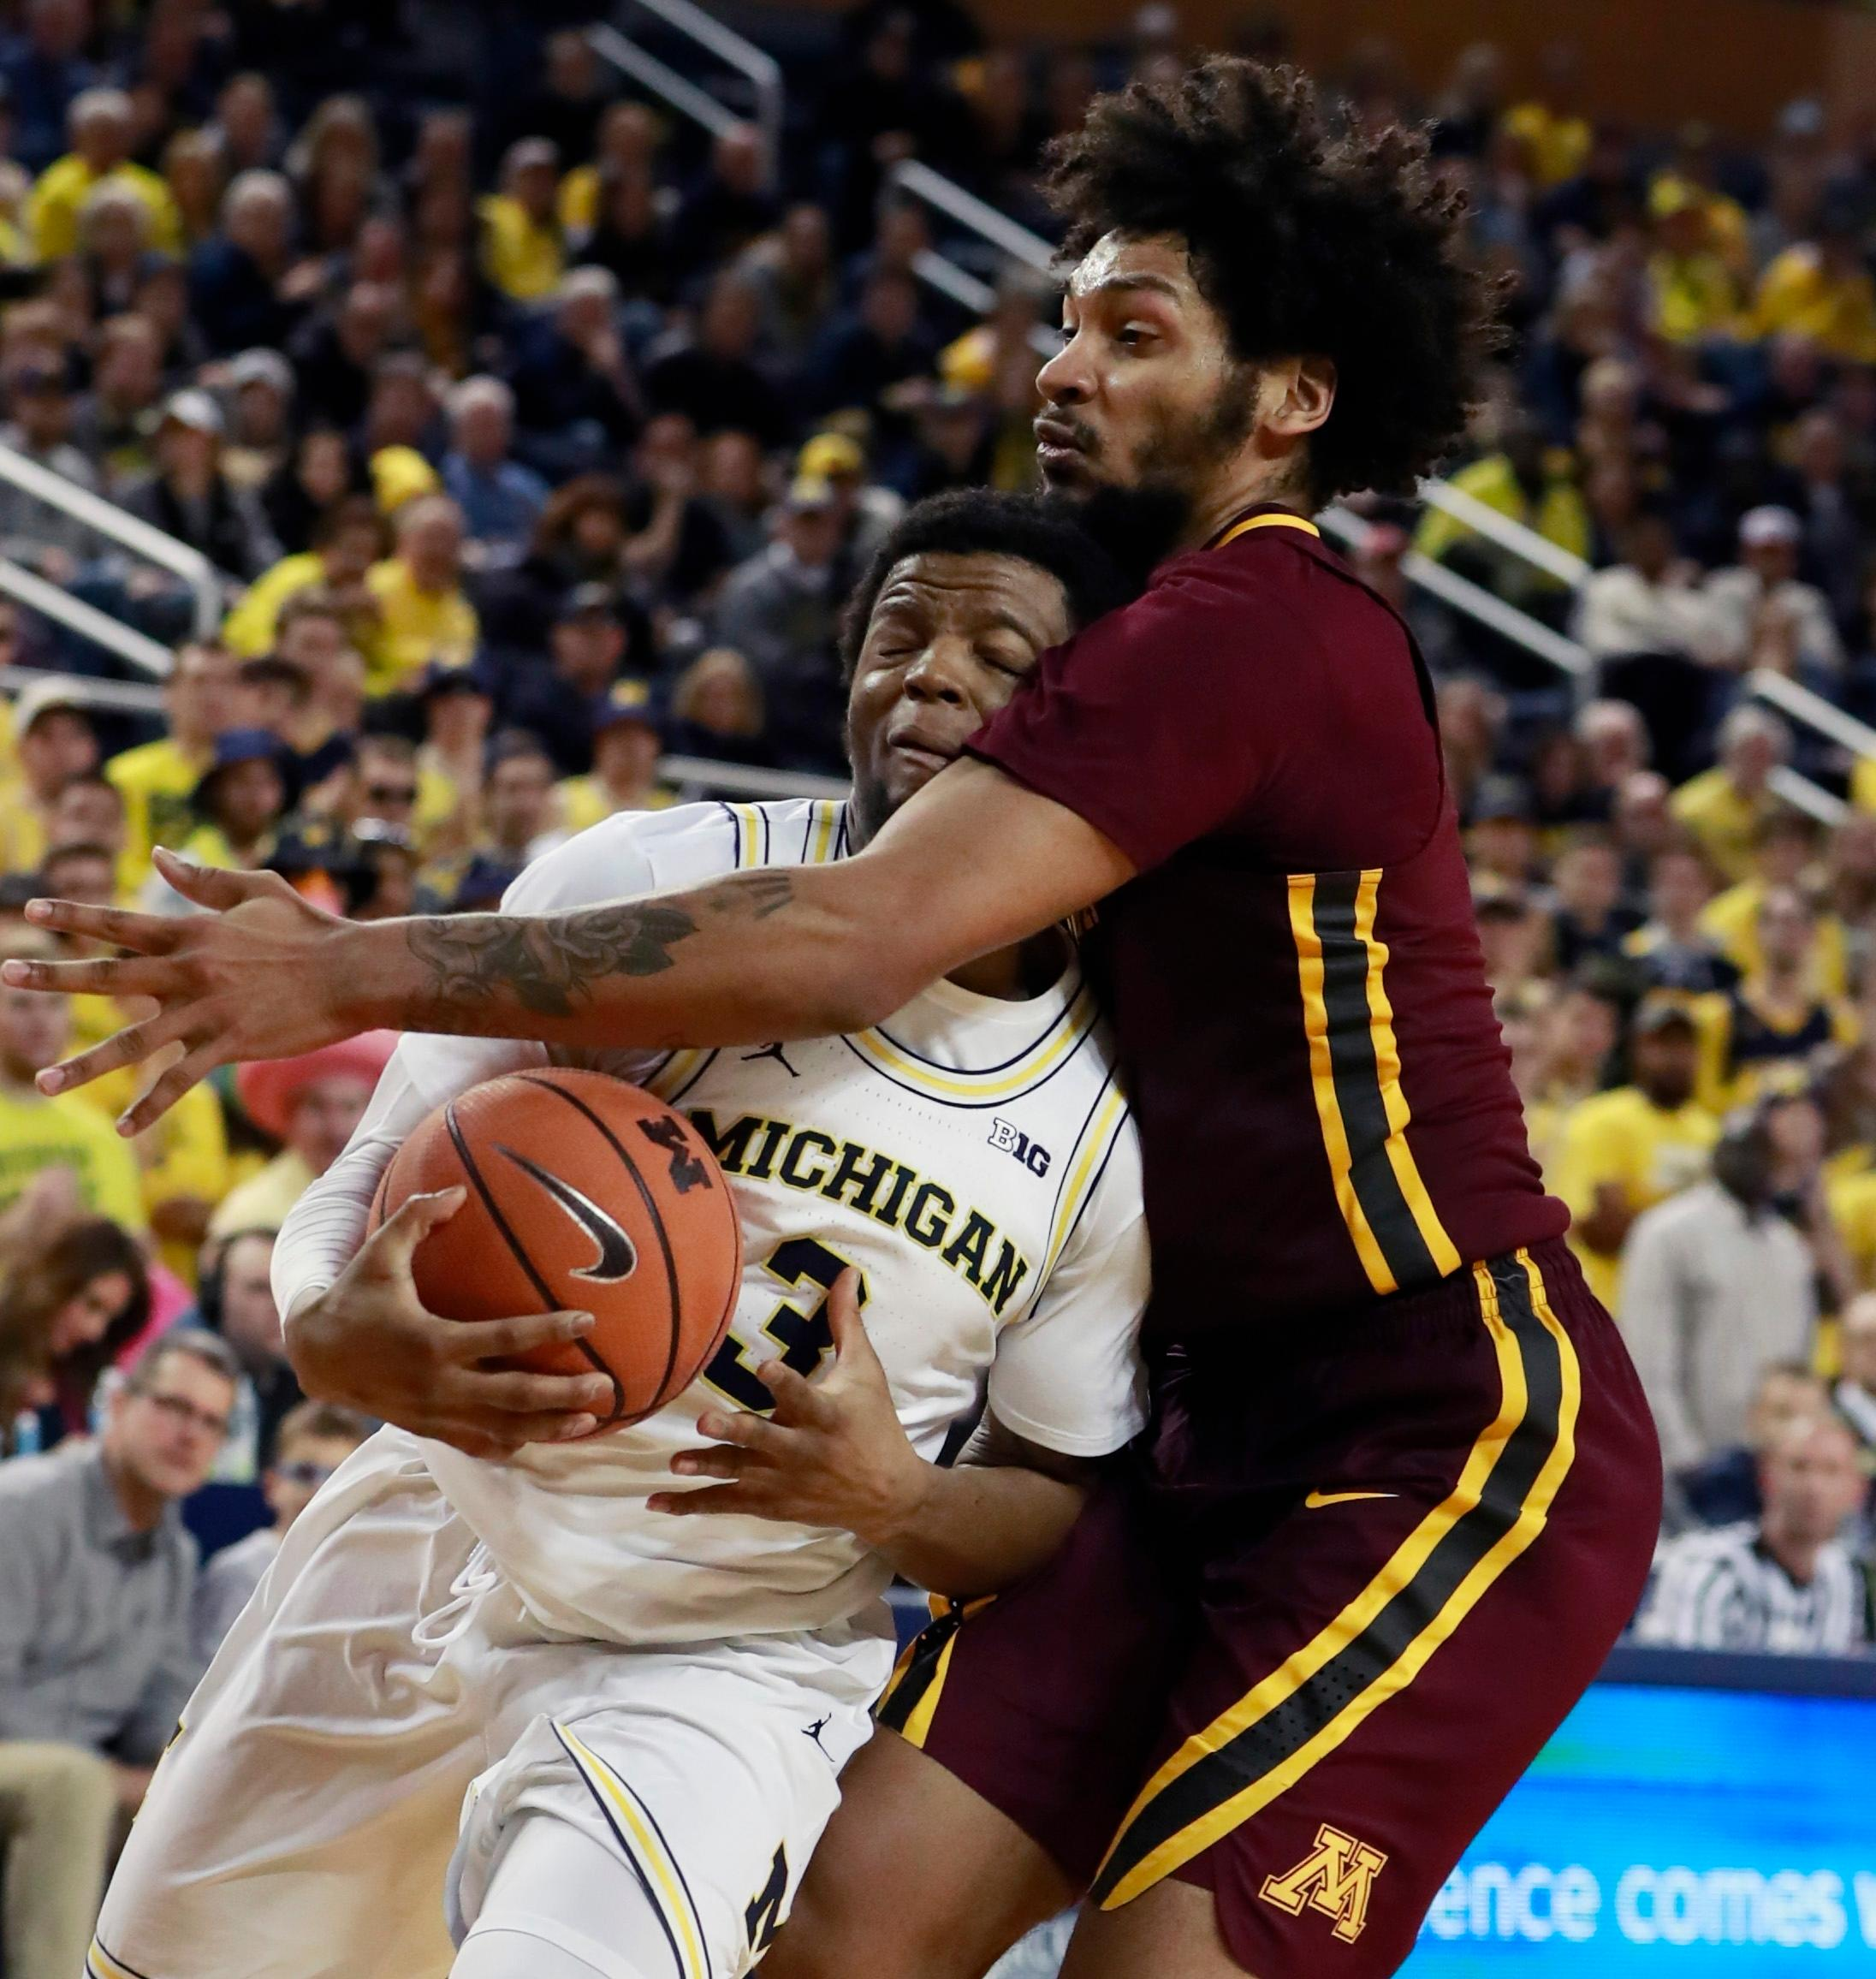 Michigan guard Zavier Simpson (3) is fouled by Minnesota forward Jordan Murphy during the second half of an NCAA college basketball game, Saturday, Feb. 3, 2018, in Ann Arbor, Mich. (AP Photo/Carlos Osorio)